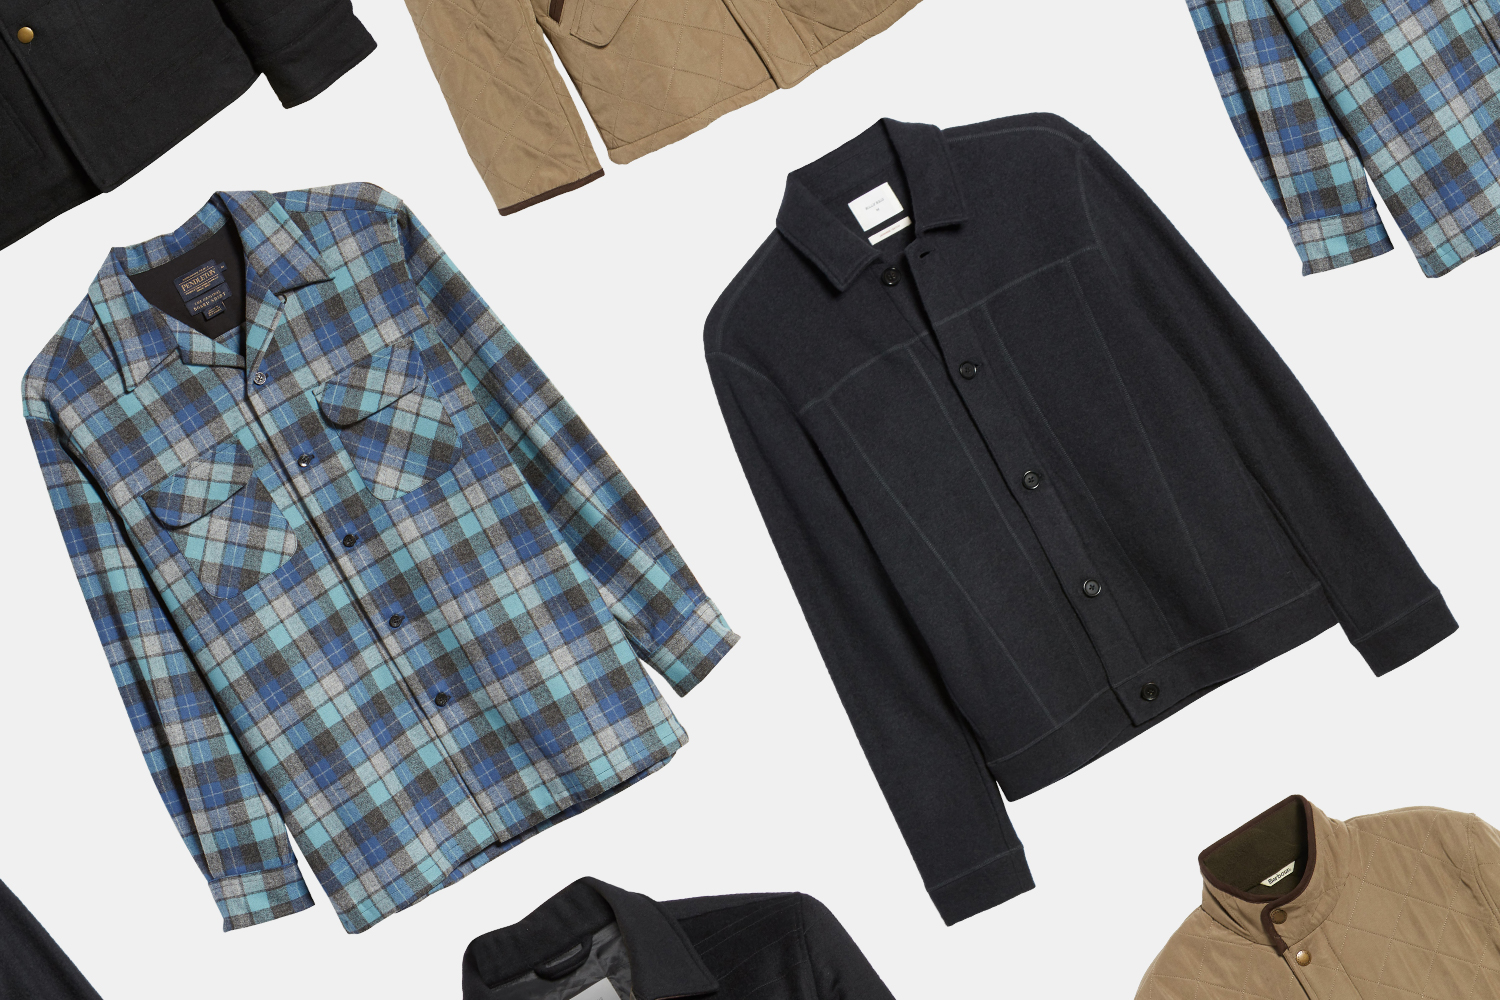 Nordstrom menswear shirts and jackets